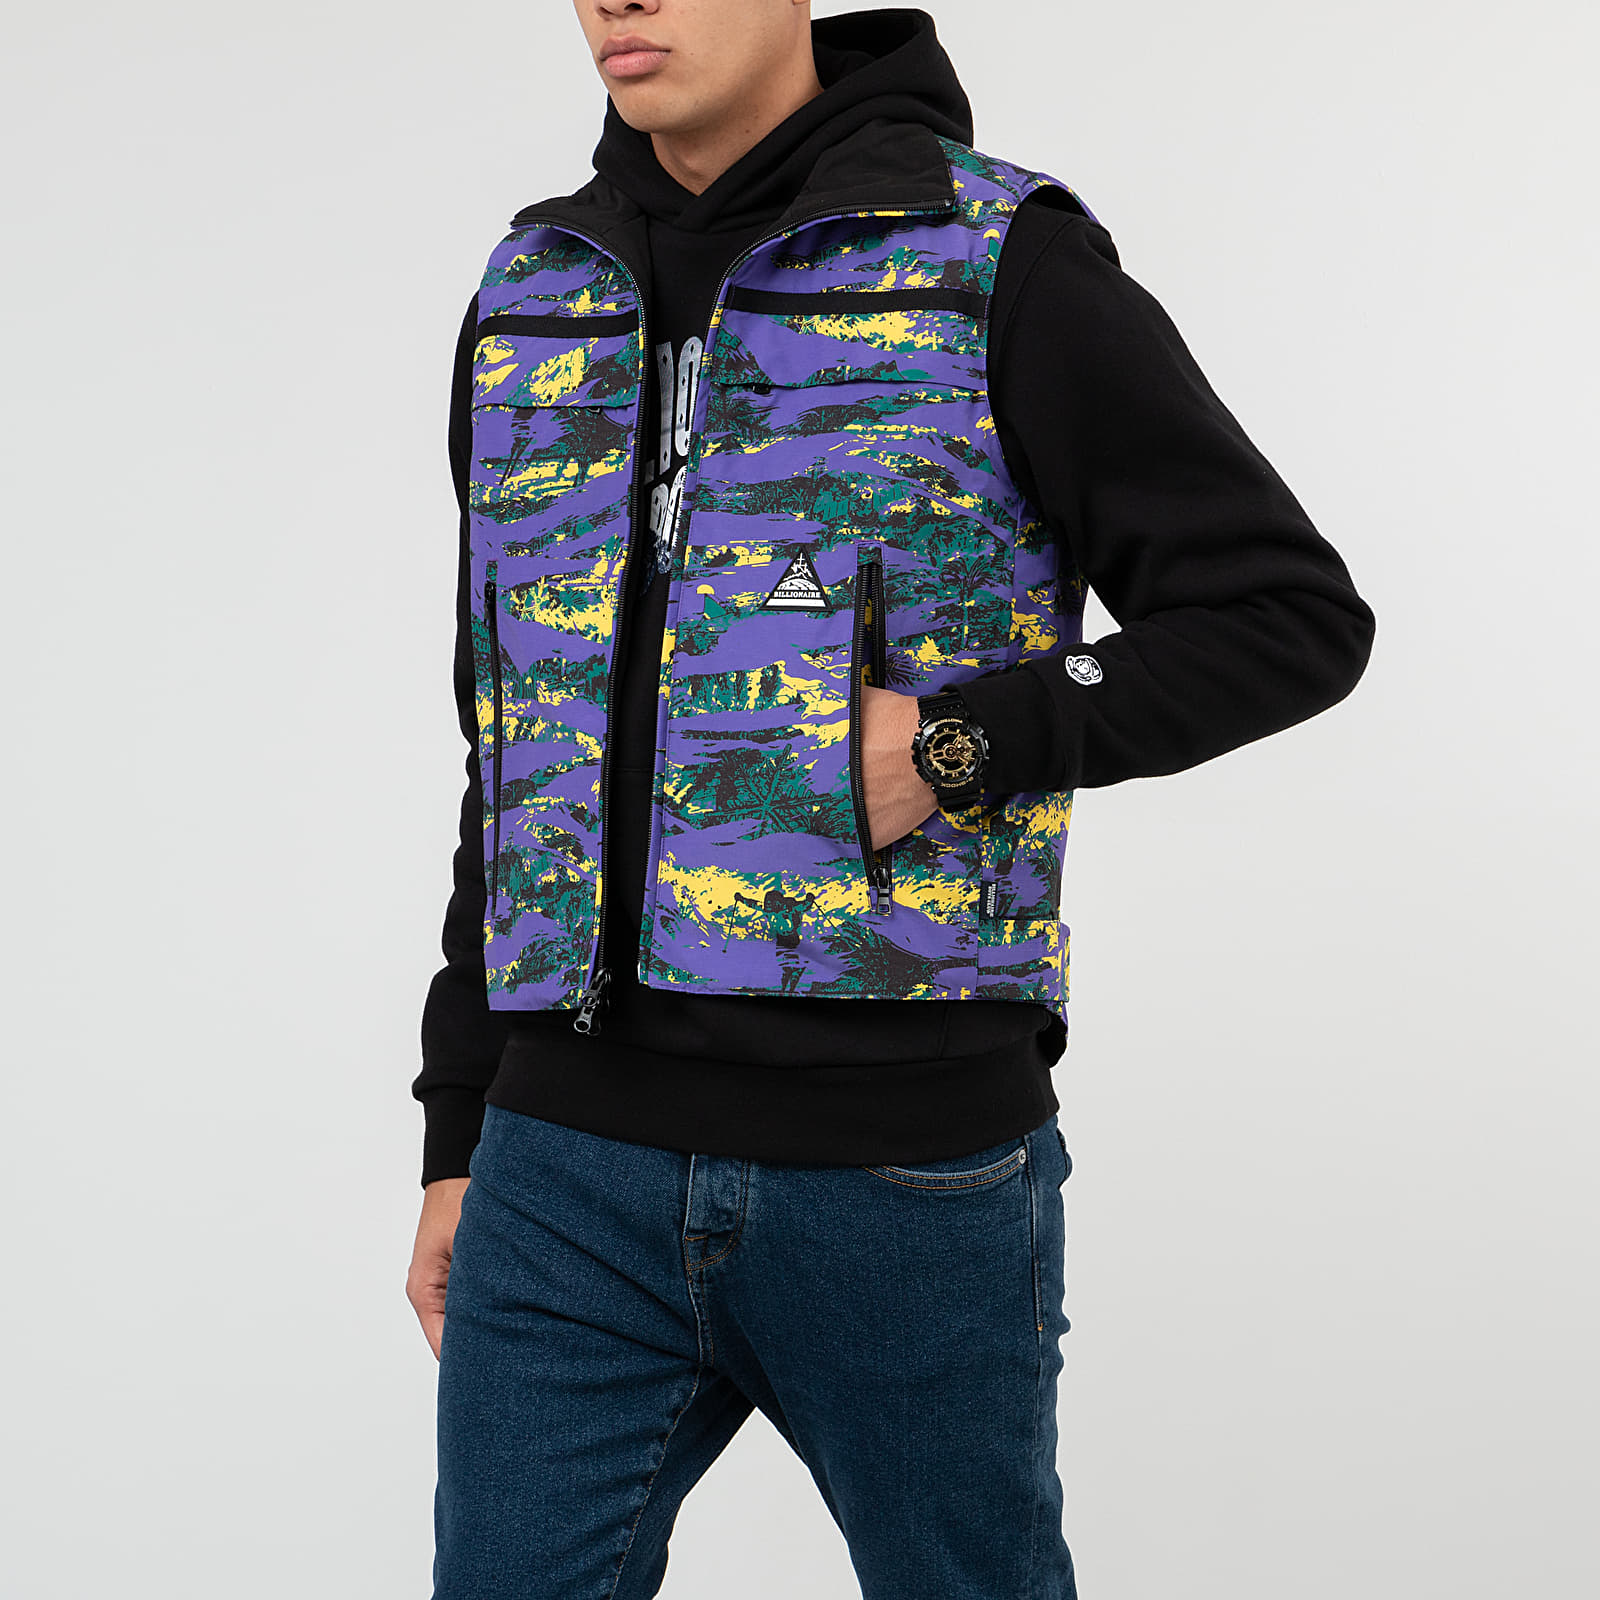 Geci Billionaire Boys Club Reversible Ski Vest Purple Camo/ Black